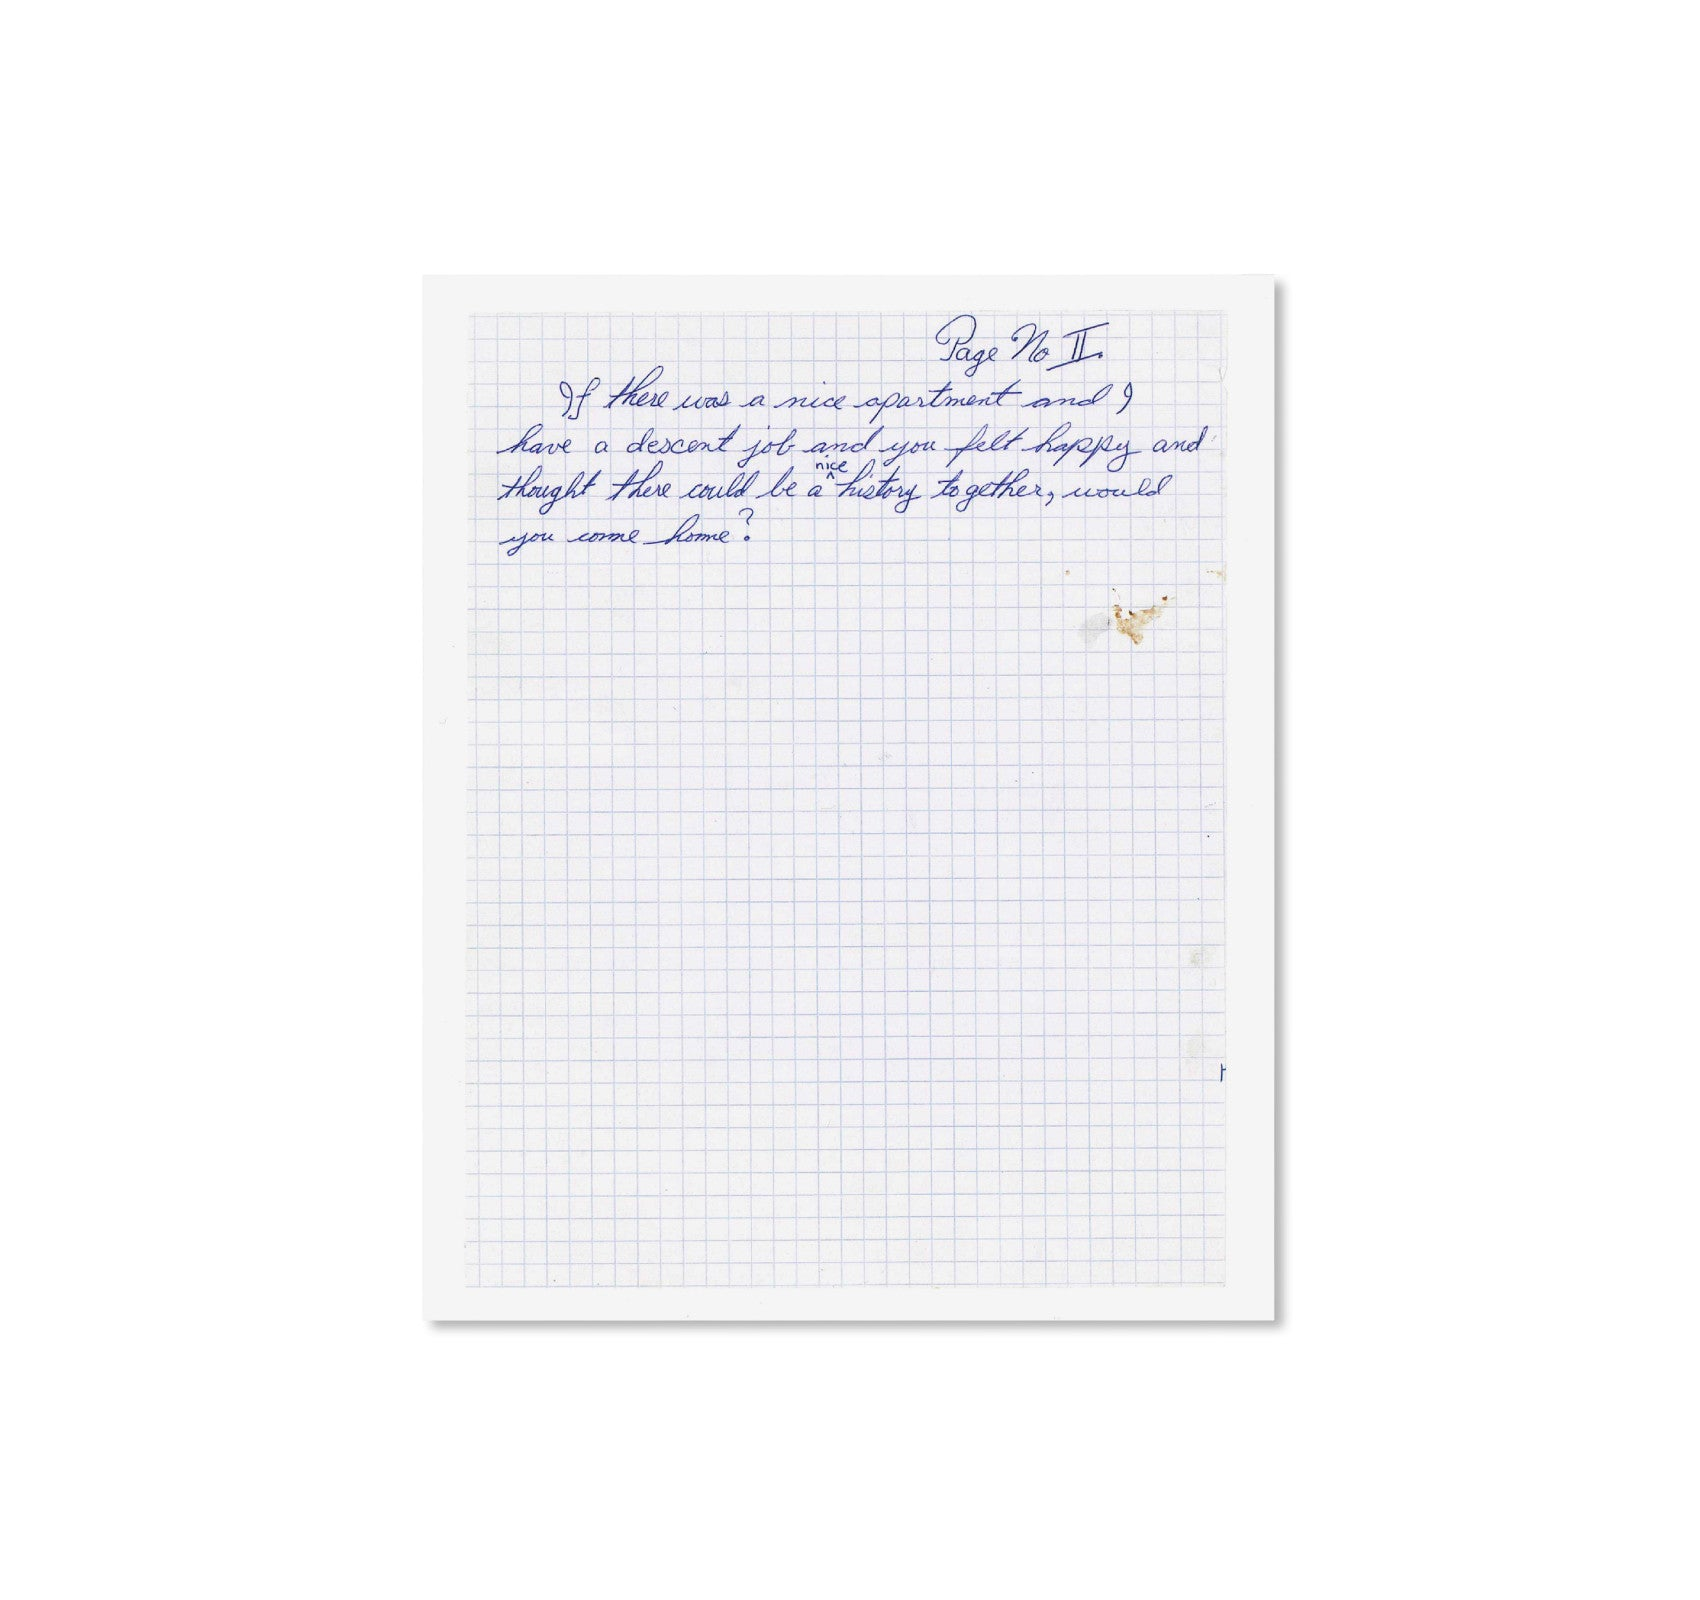 GATHERED LEAVES POSTCARDS by Alec Soth